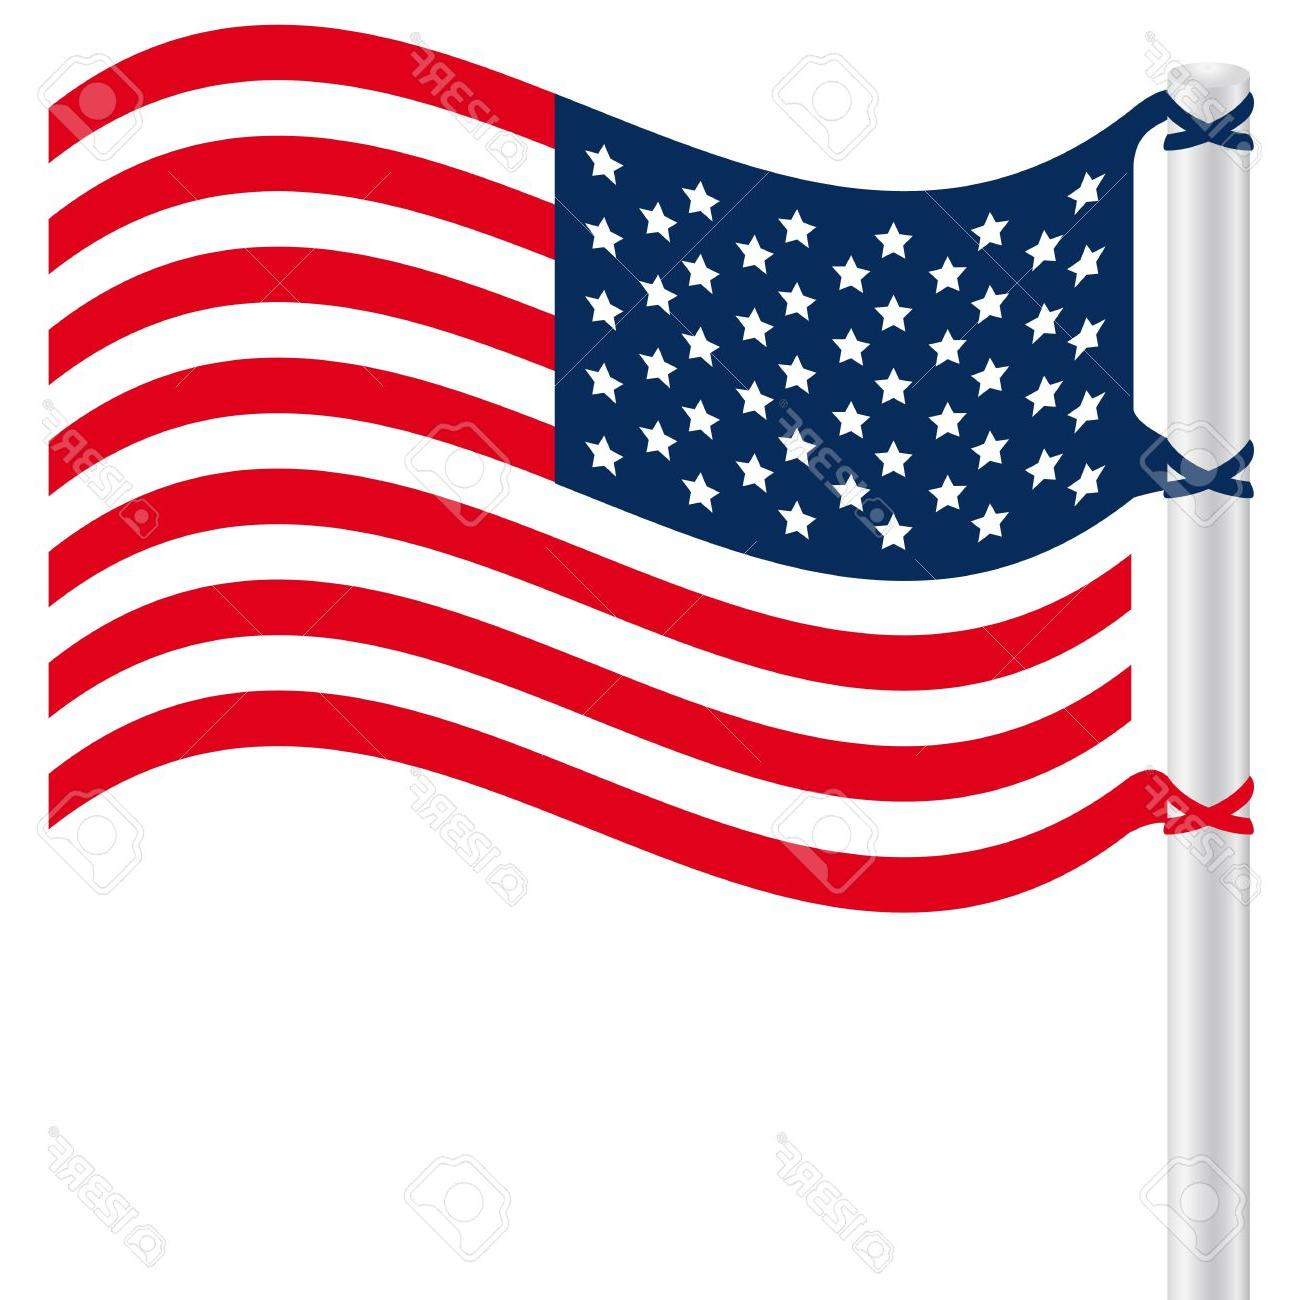 1300x1300 Best Waving American Flag Clip Art Image